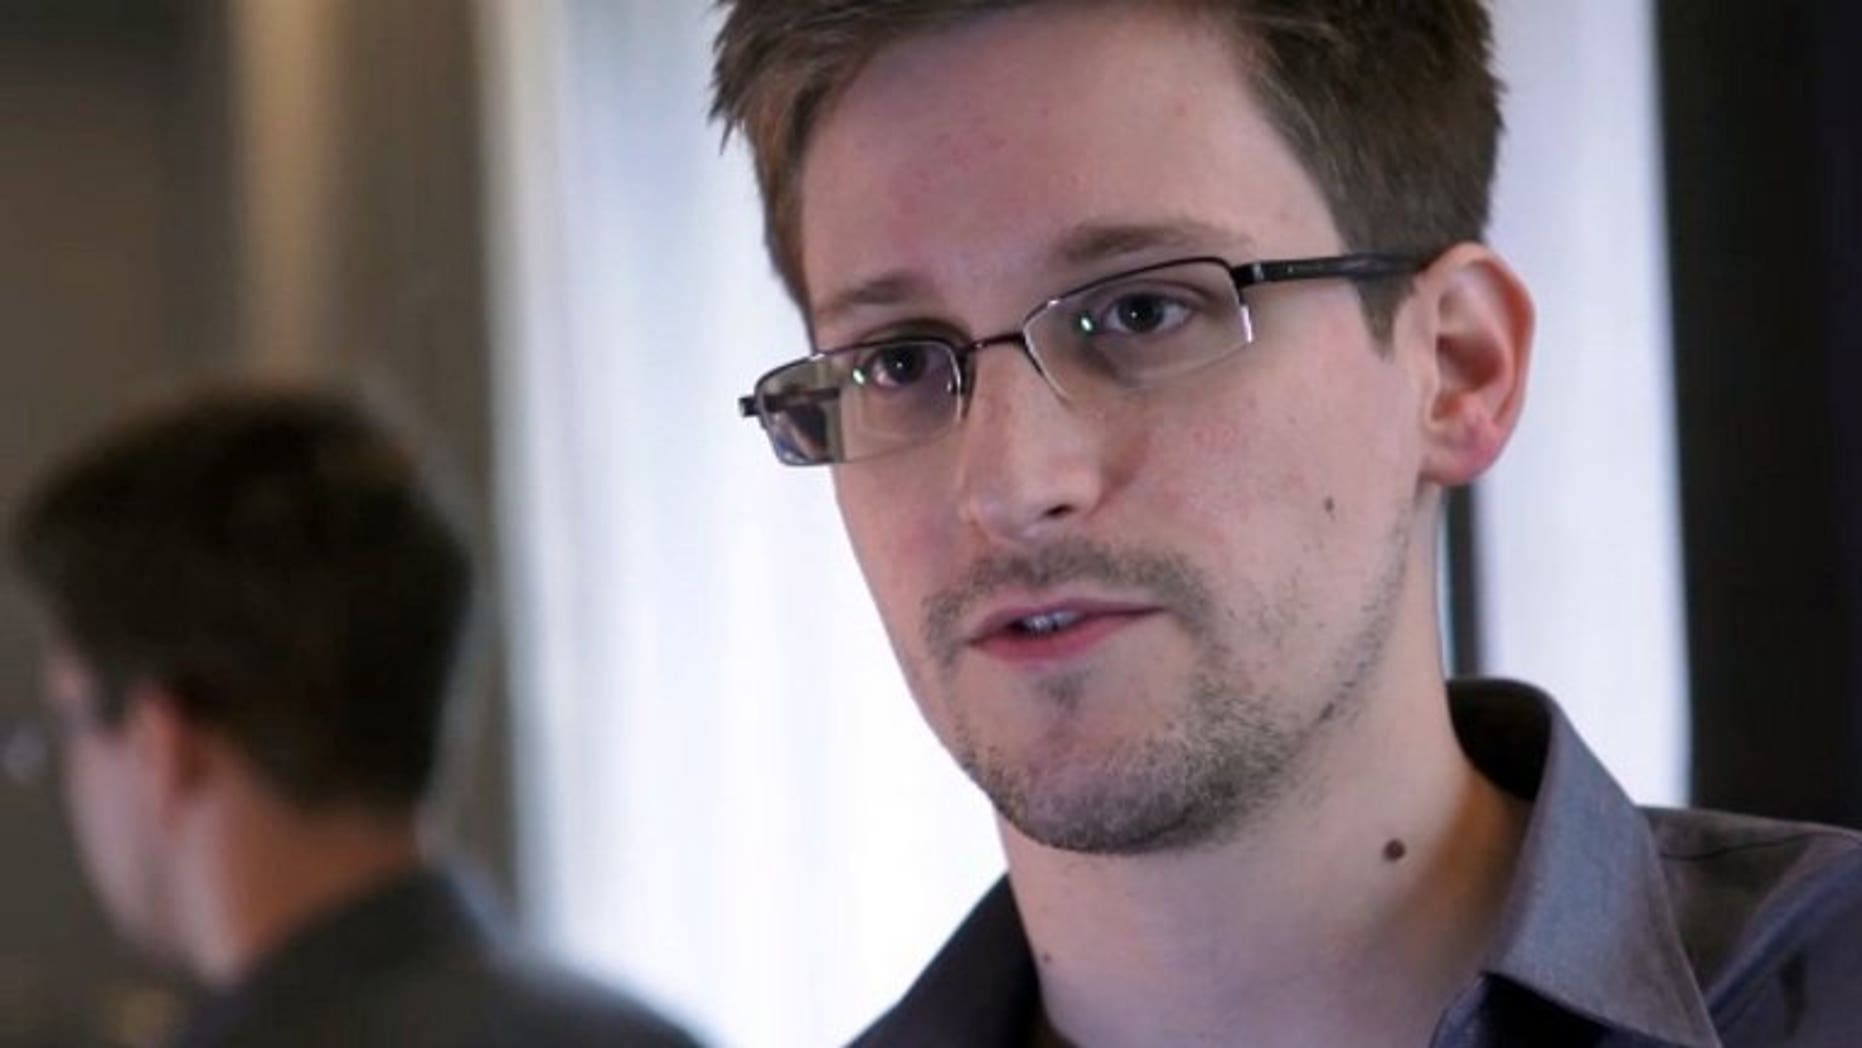 A video image shows Edward Snowden in an interview with The Guardian, on June 6, 2013. Russia's migration service has provided Snowden with a document that allows him to leave the Moscow airport transit zone where he has been holed up for the last month, according to the RIA Novosti news agency.